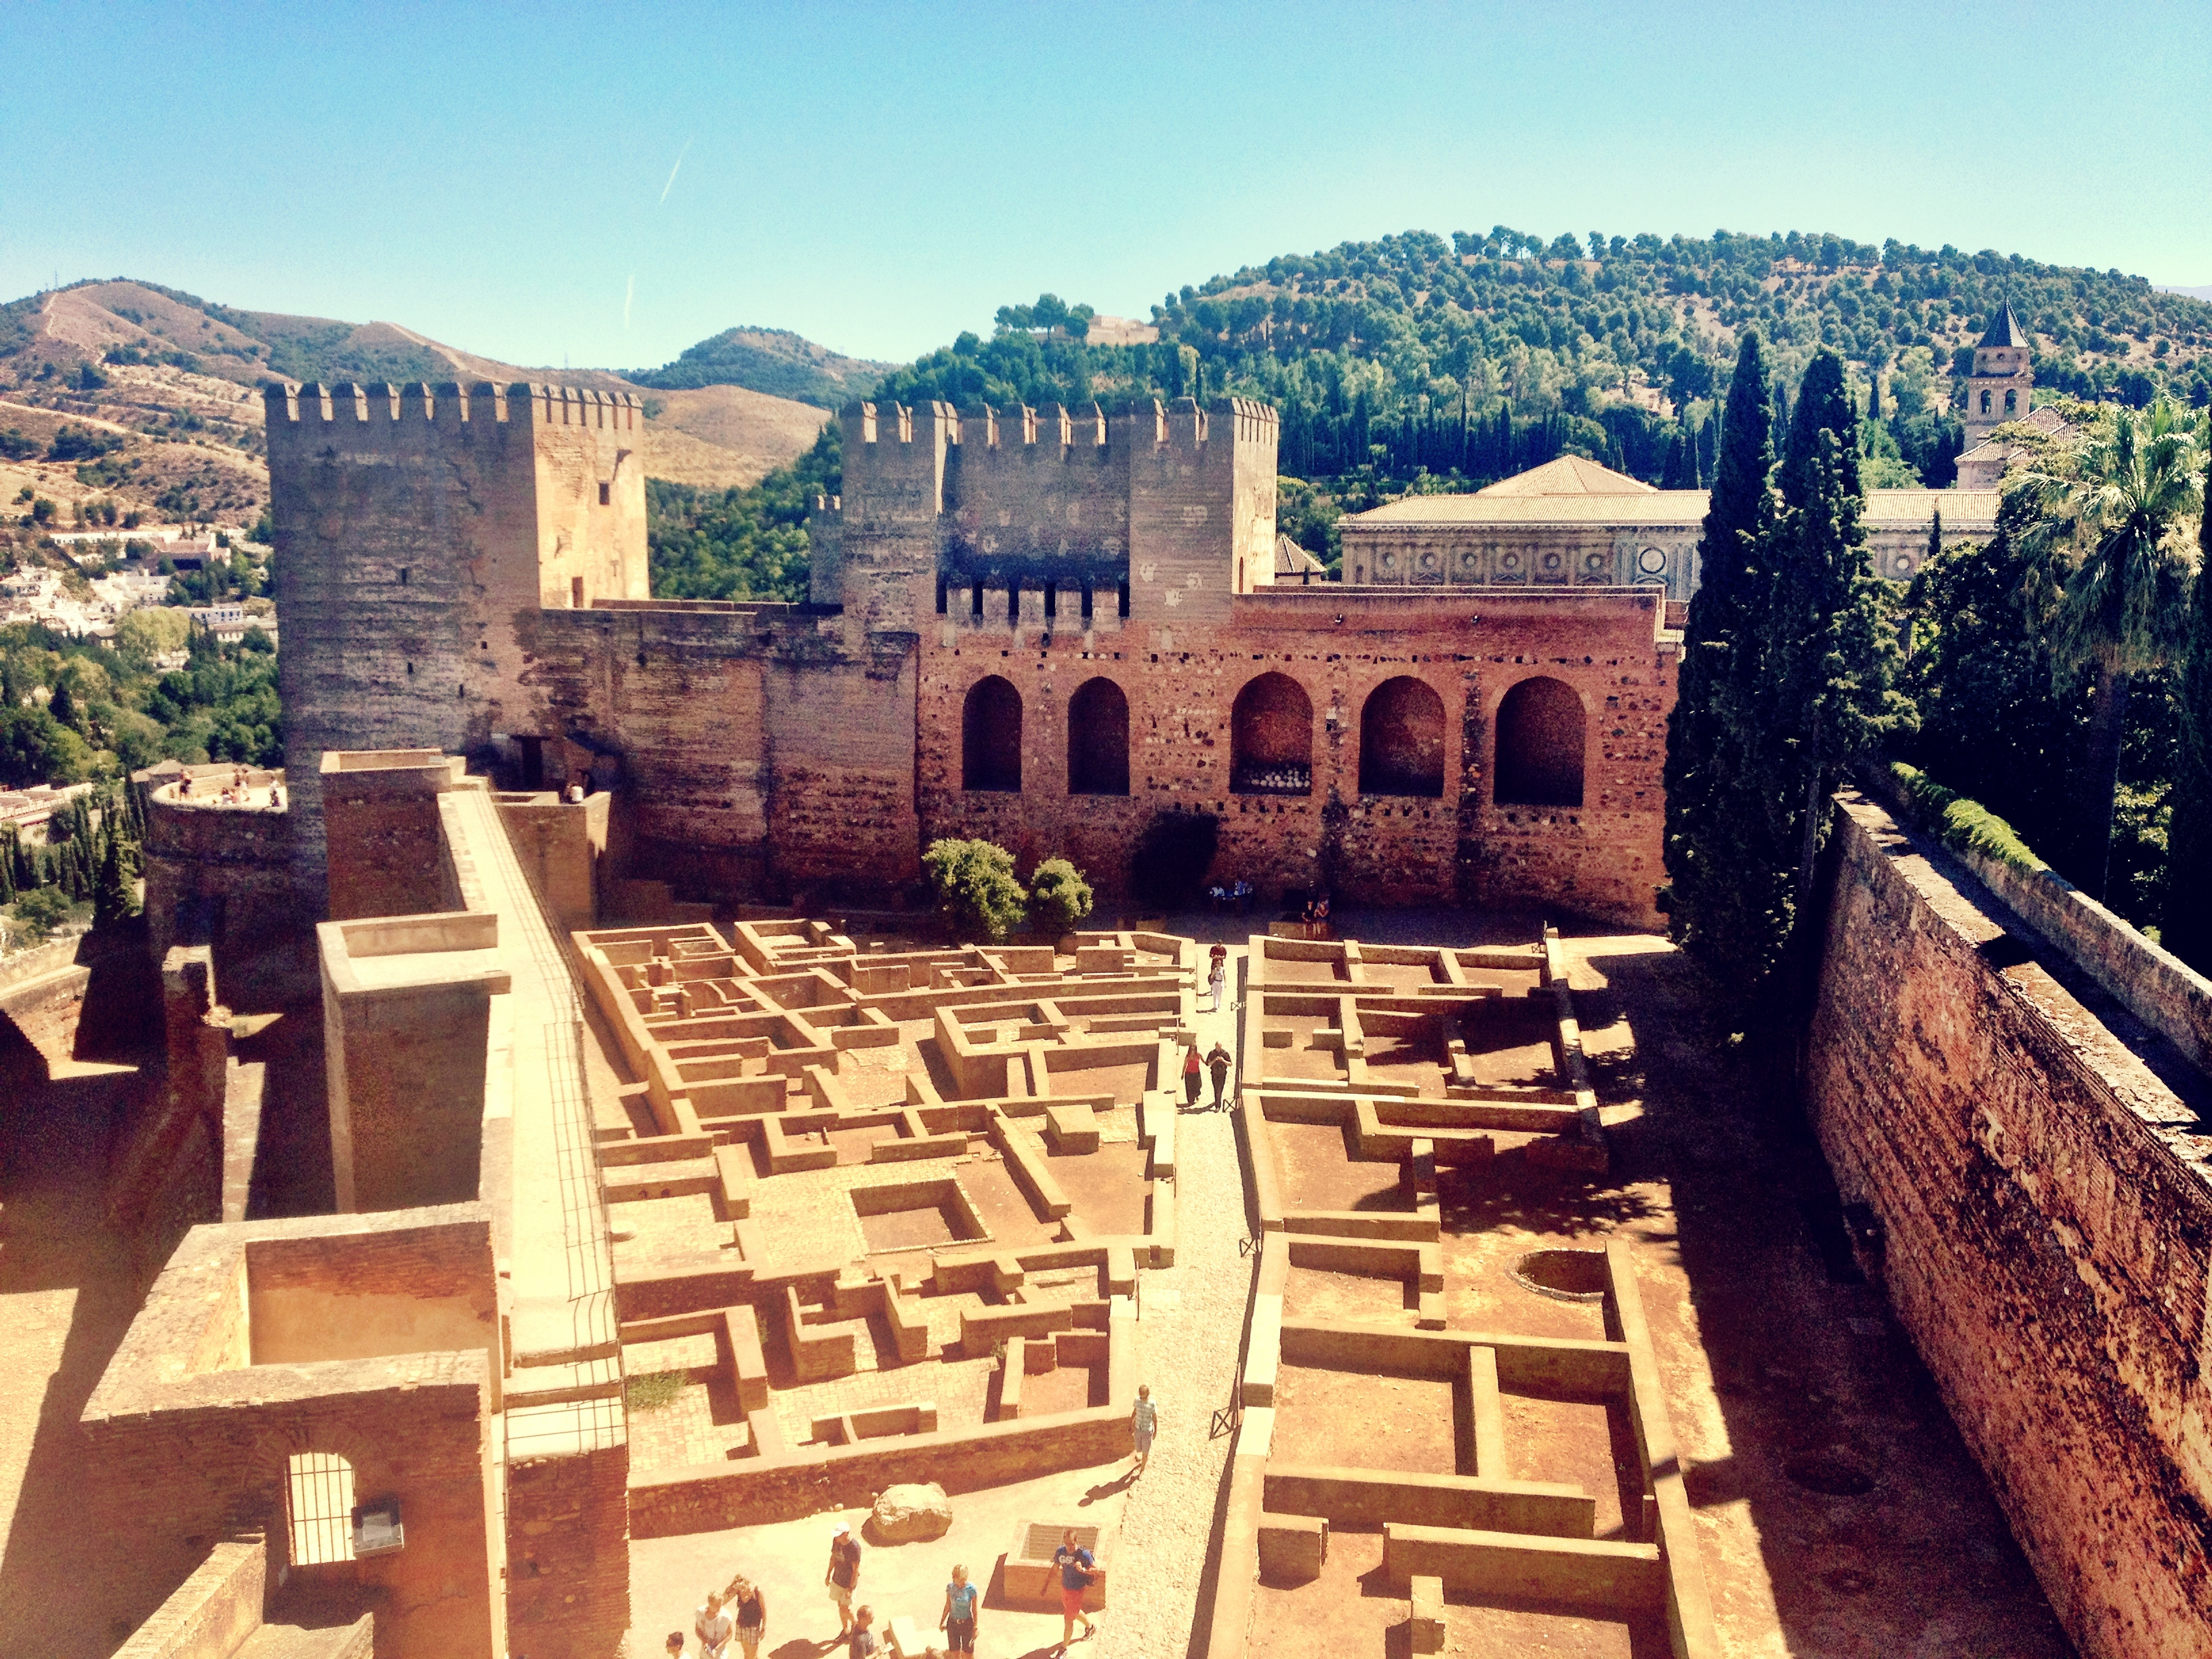 Postcards from the Alhambra